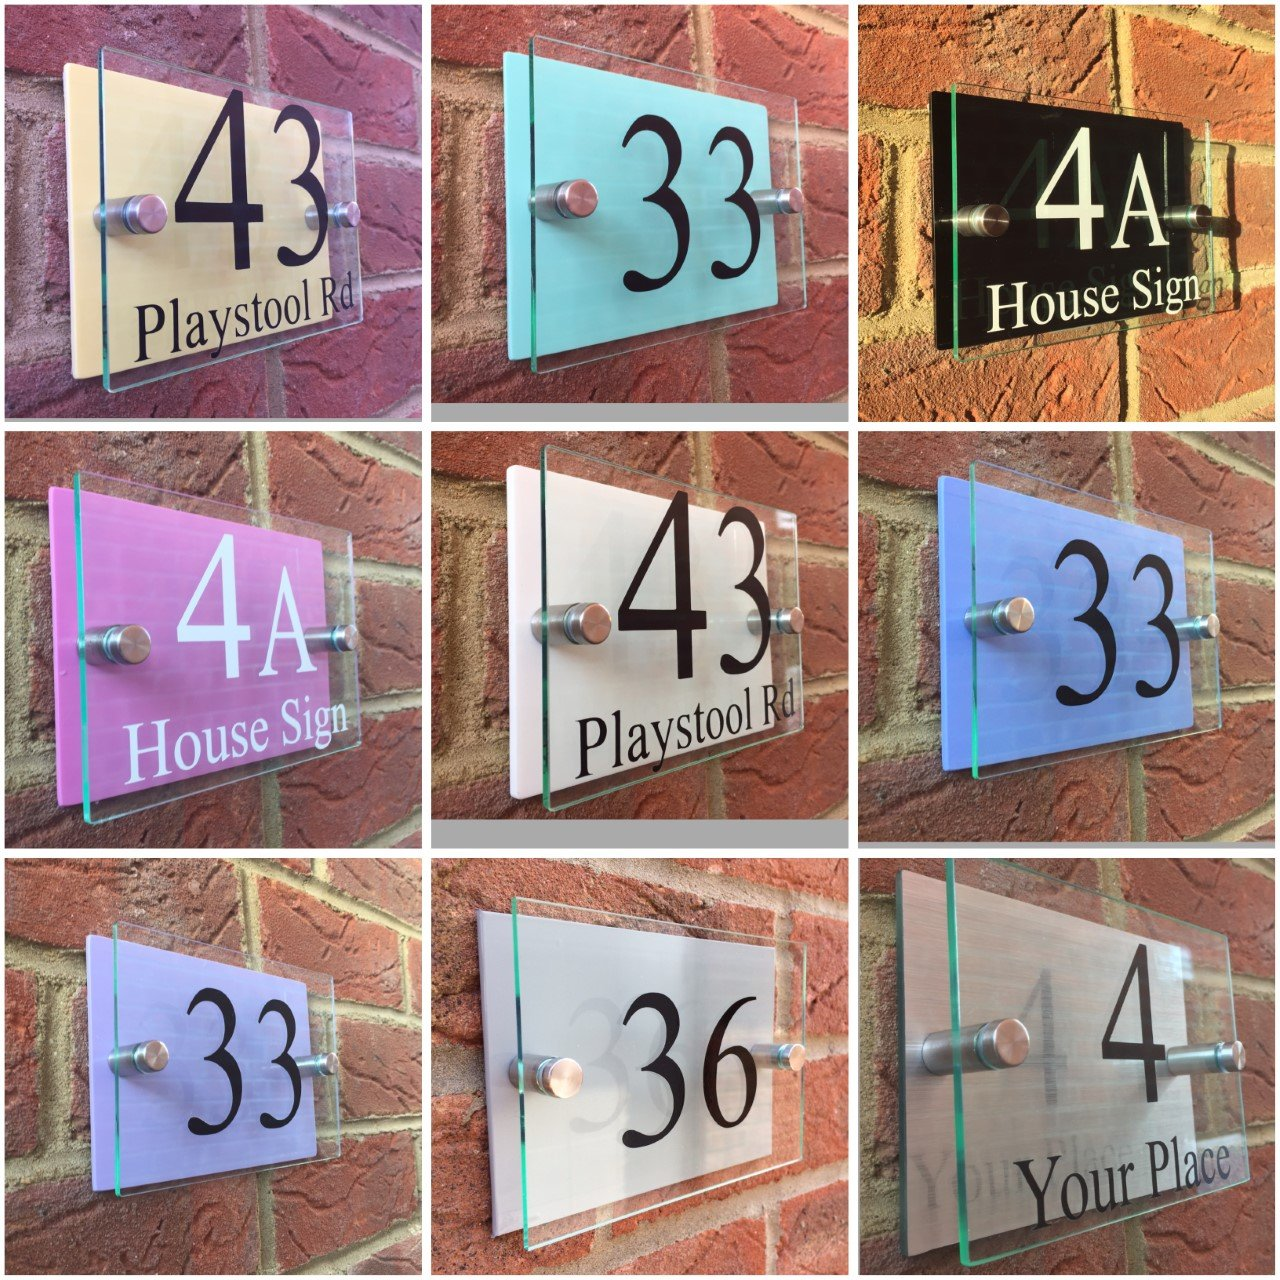 81b071cfcc9a Modern house sign door number plaque street Pastel colour backs:  Amazon.co.uk: Kitchen & Home